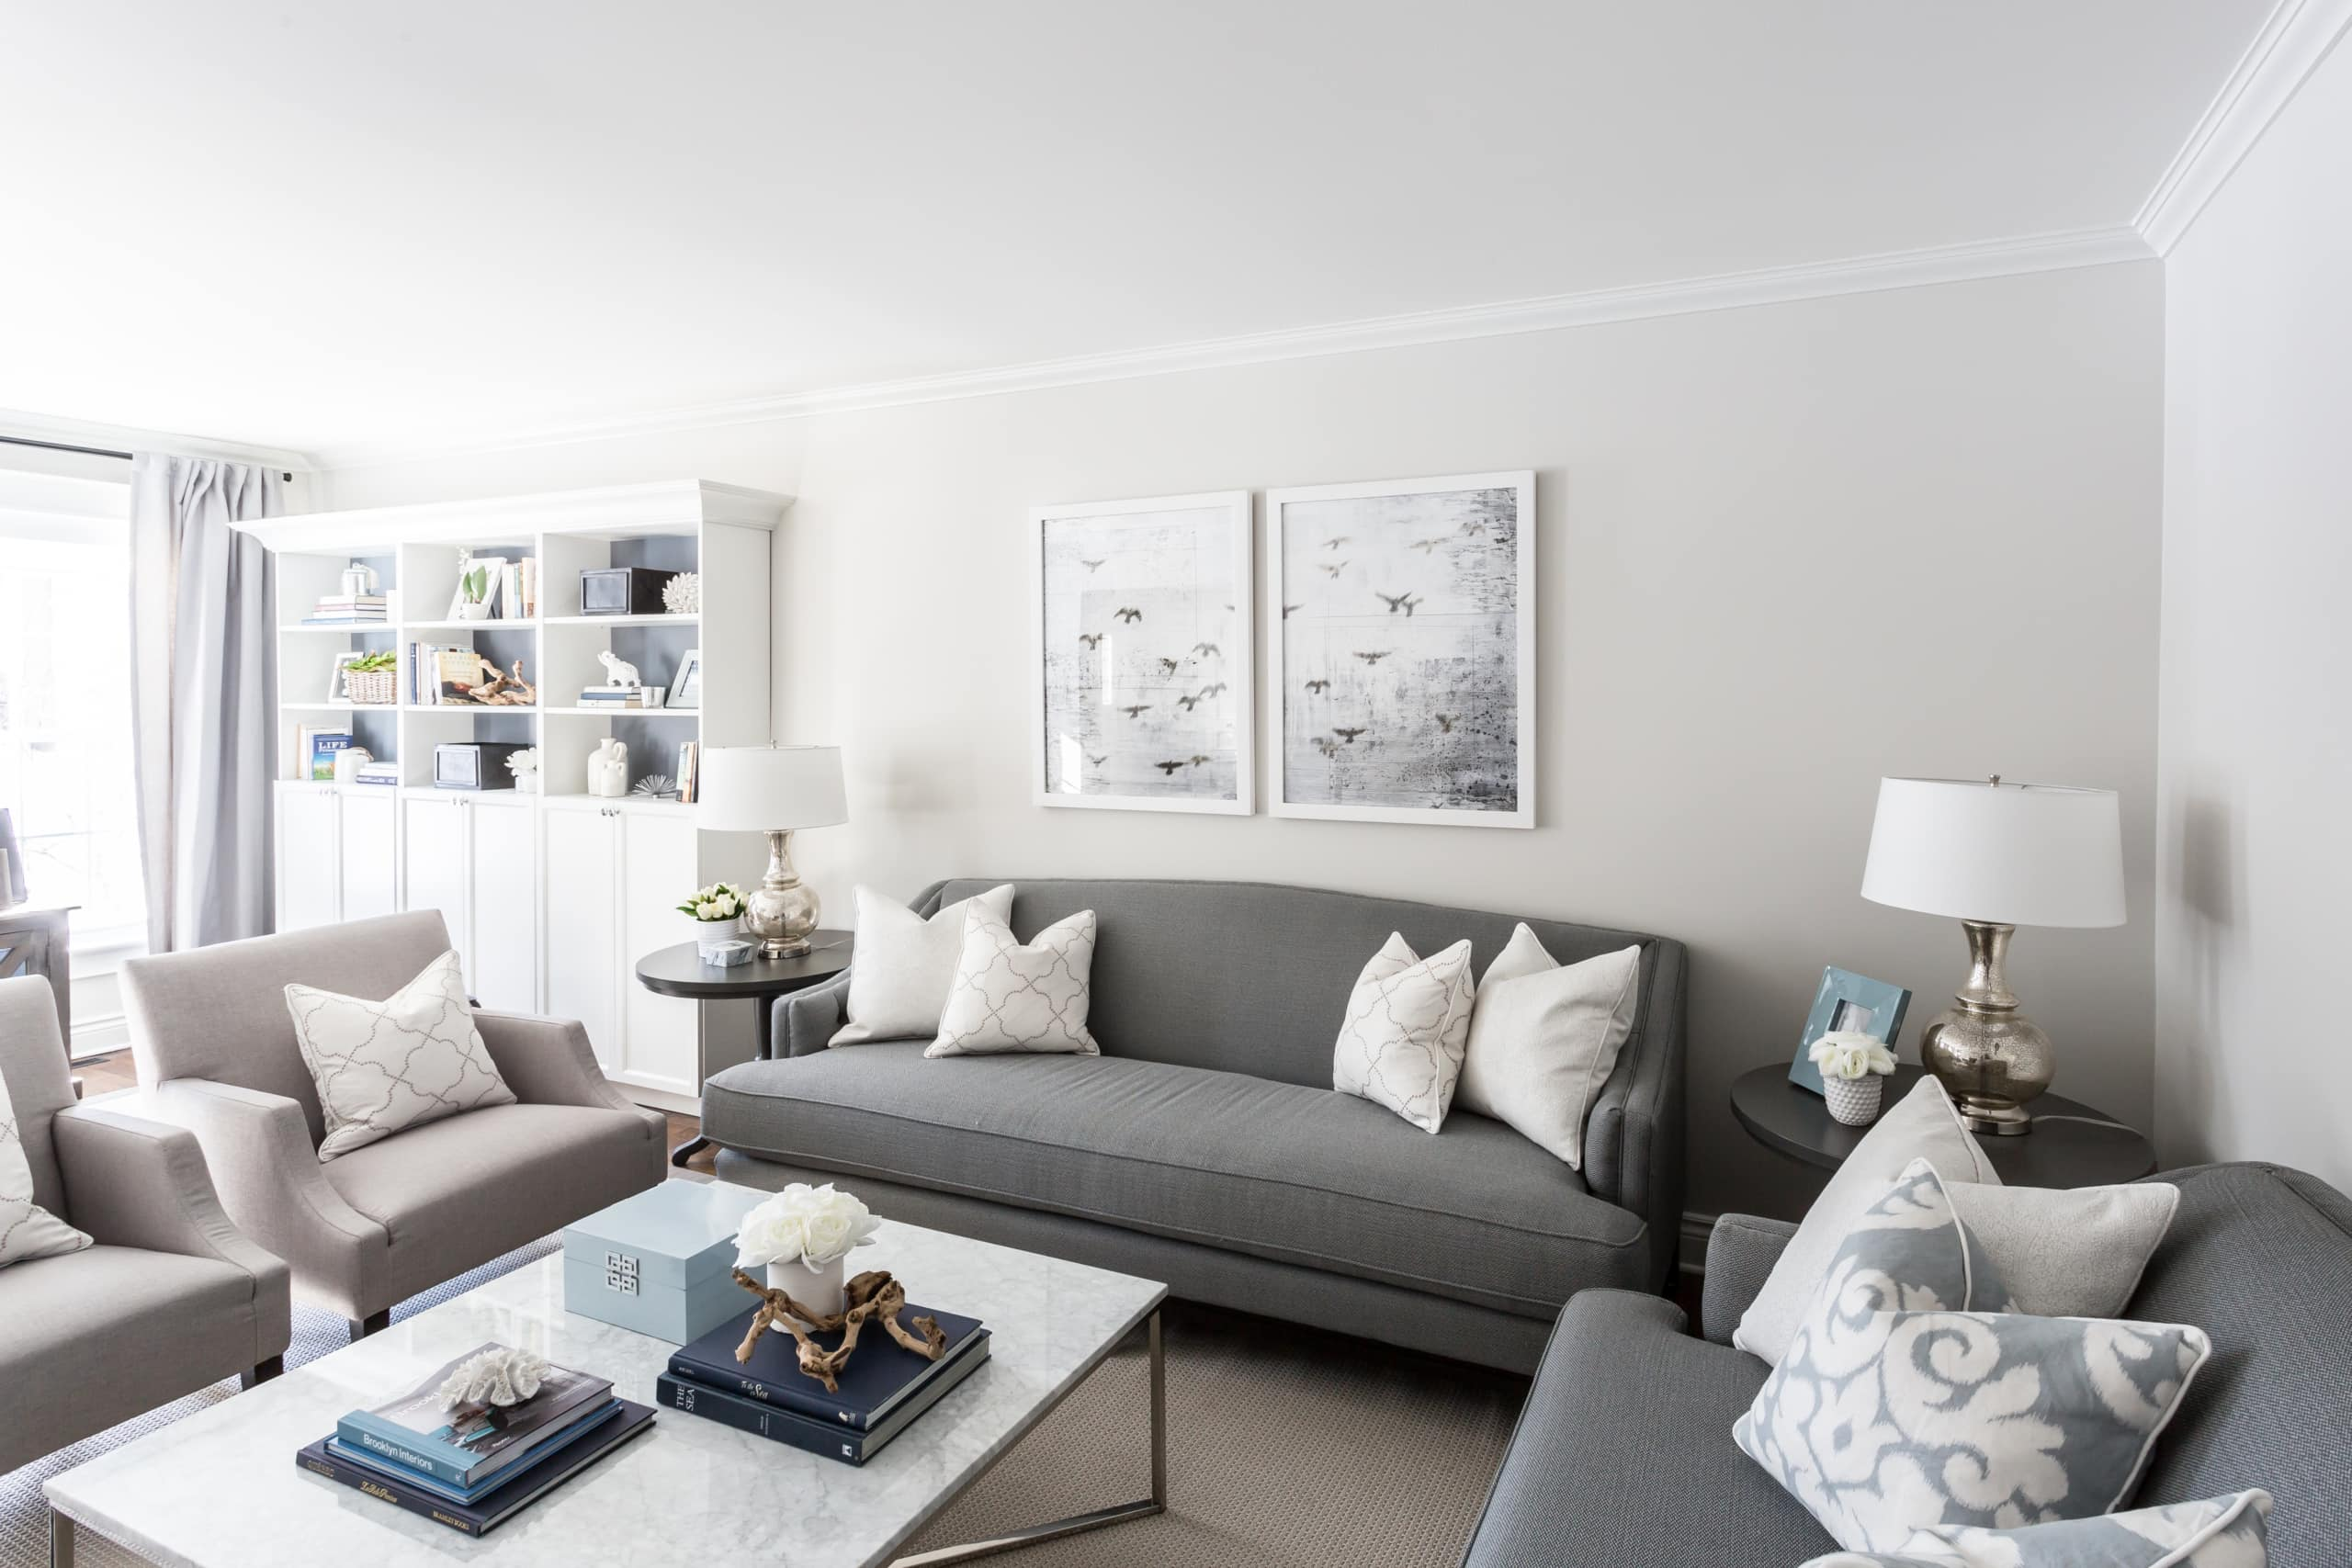 Gray couch with pictures behind it inside living room